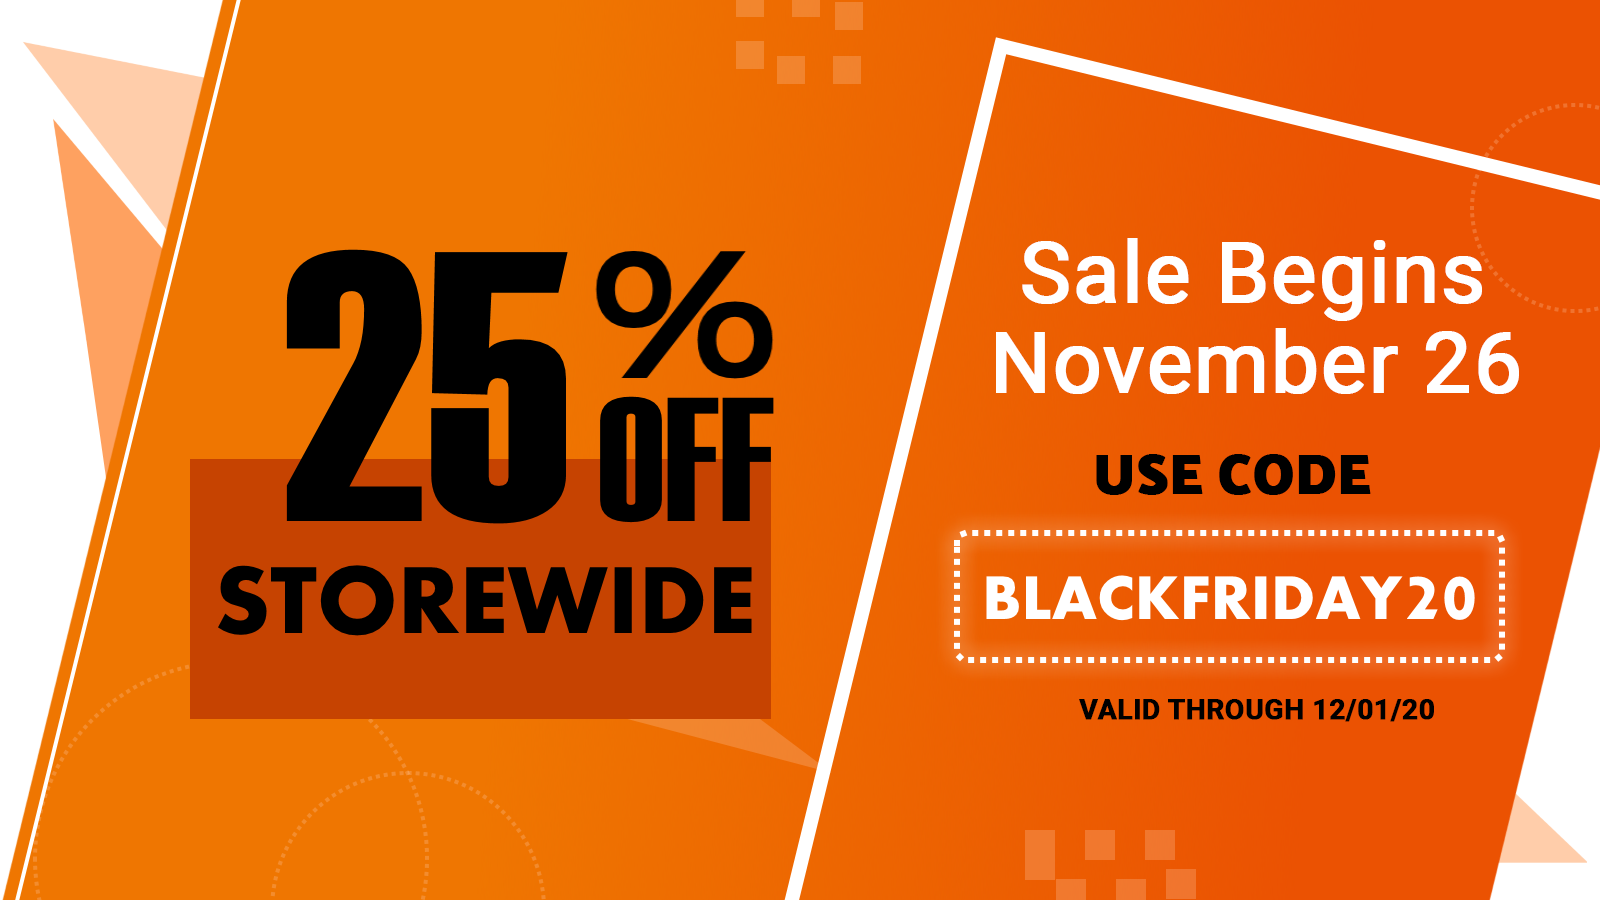 Black Friday and Cyber Monday 2020 deals from Aheadworks